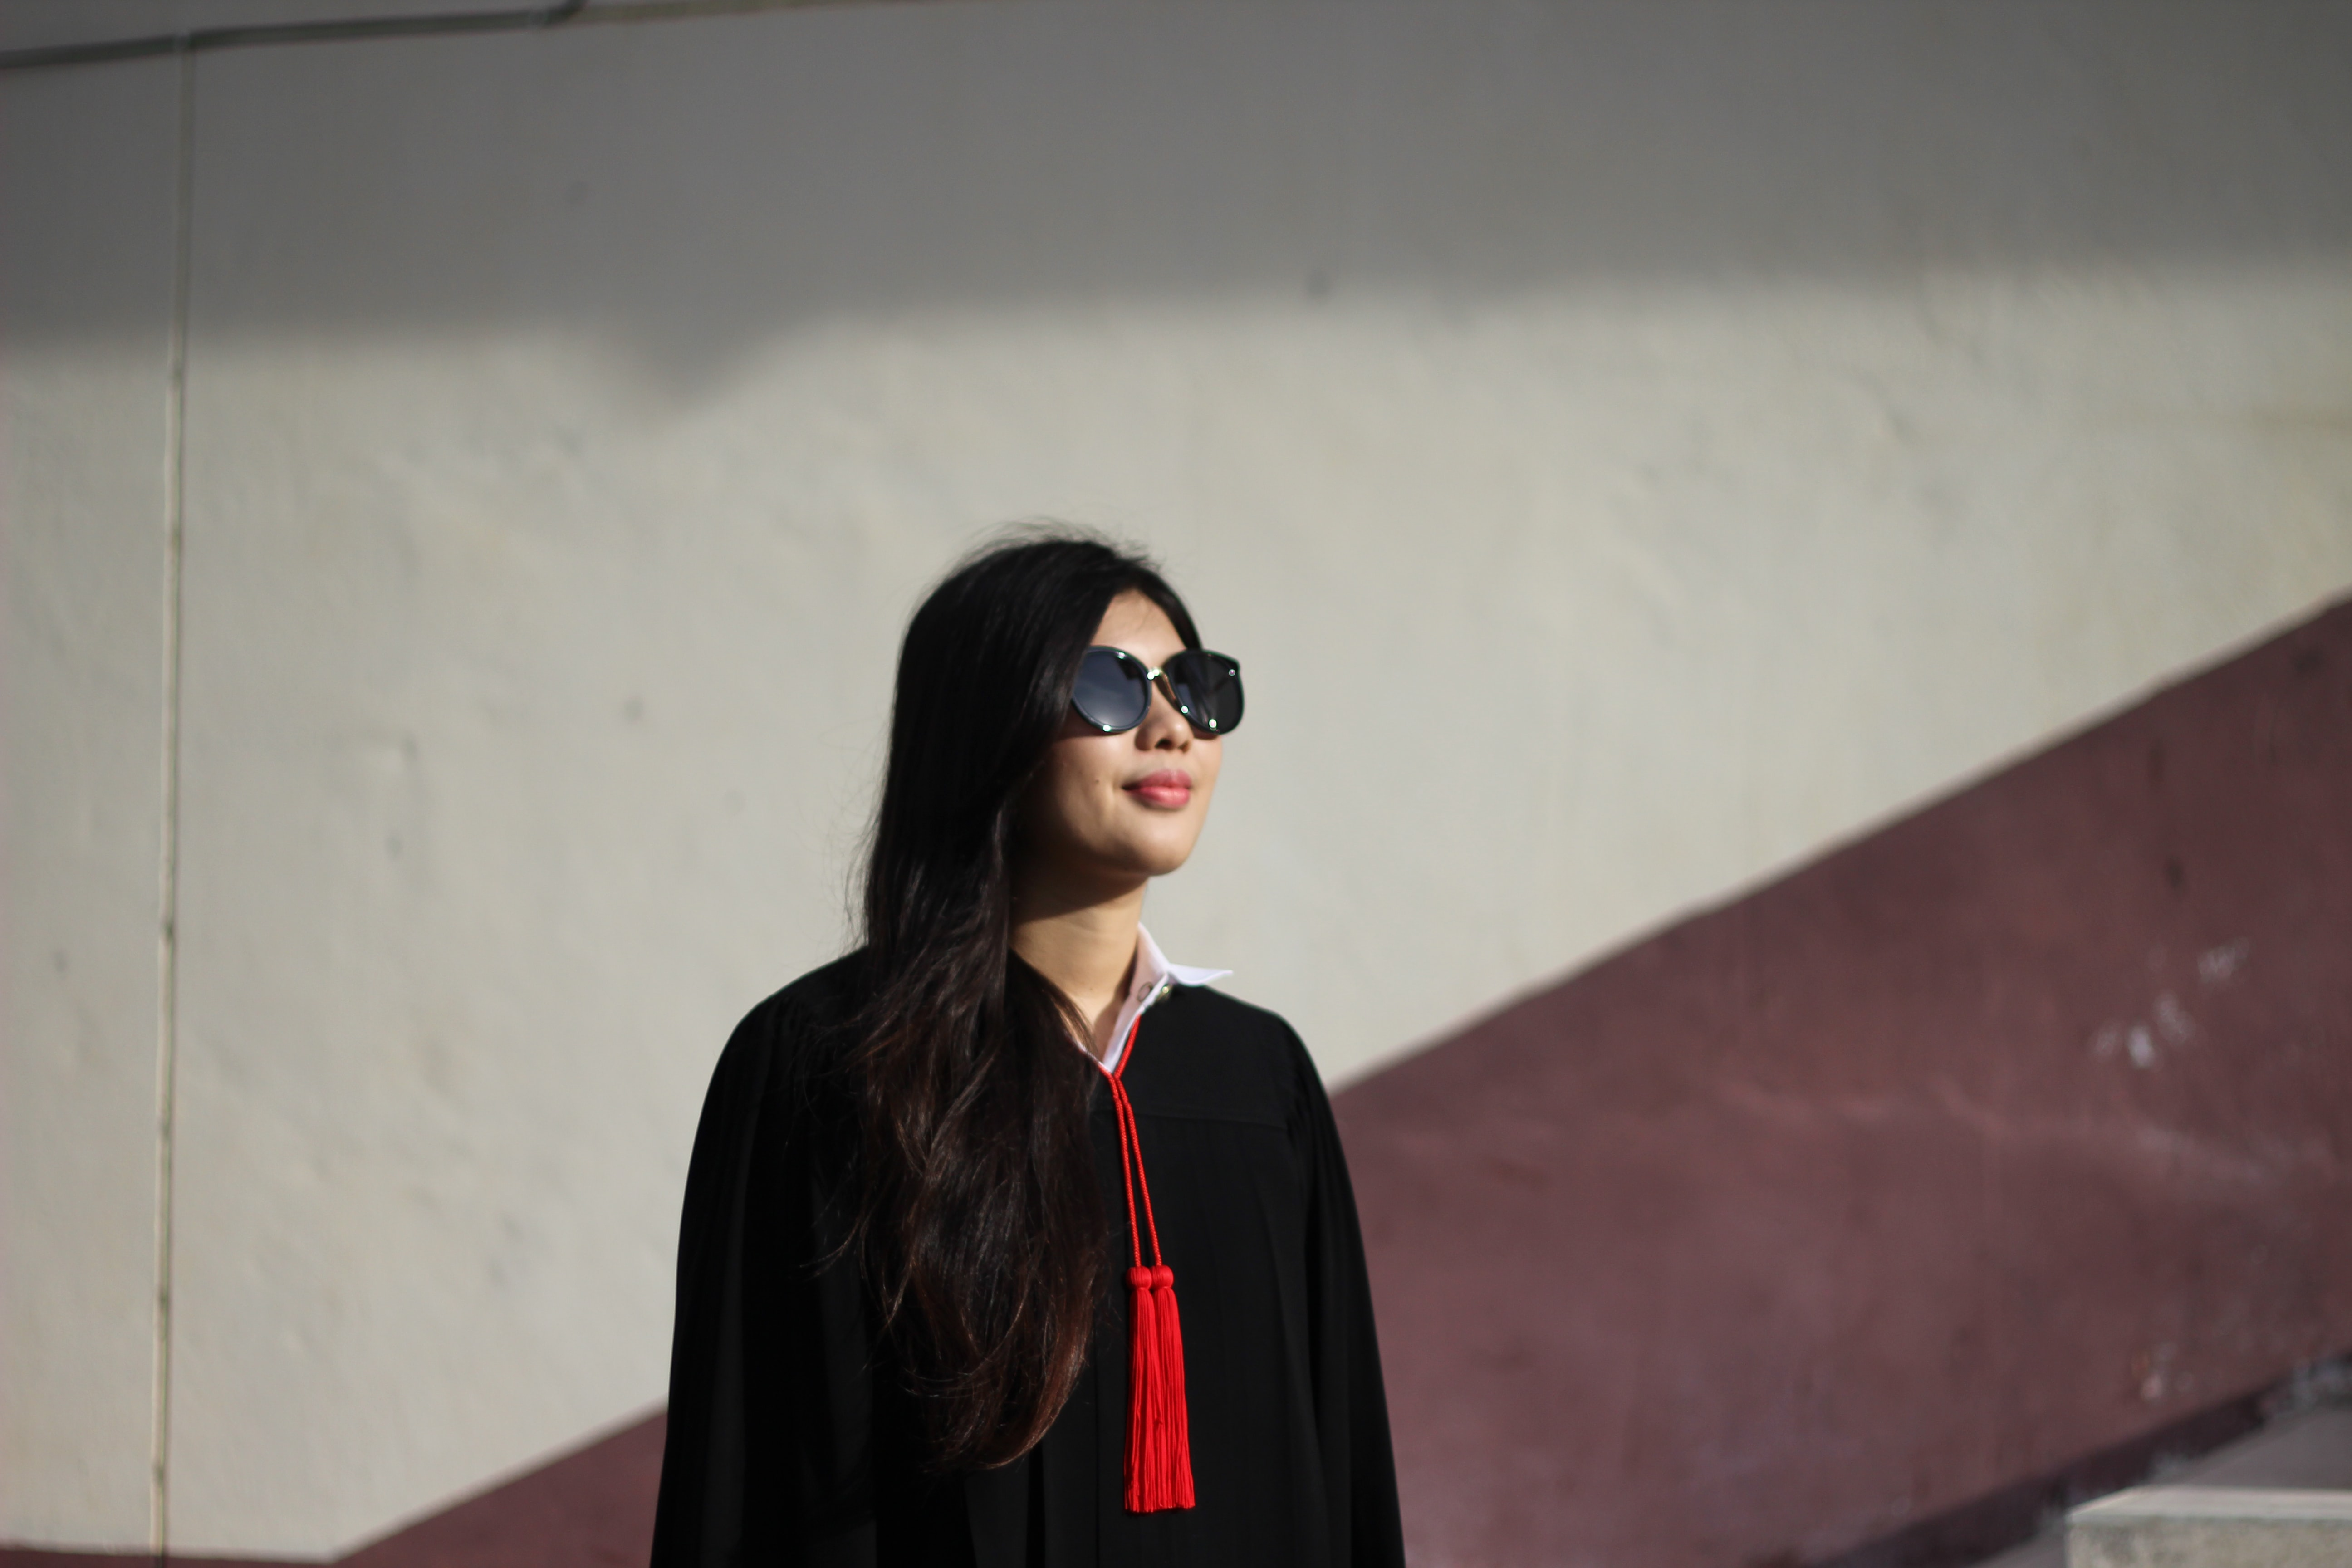 woman wearing black jacket and red top